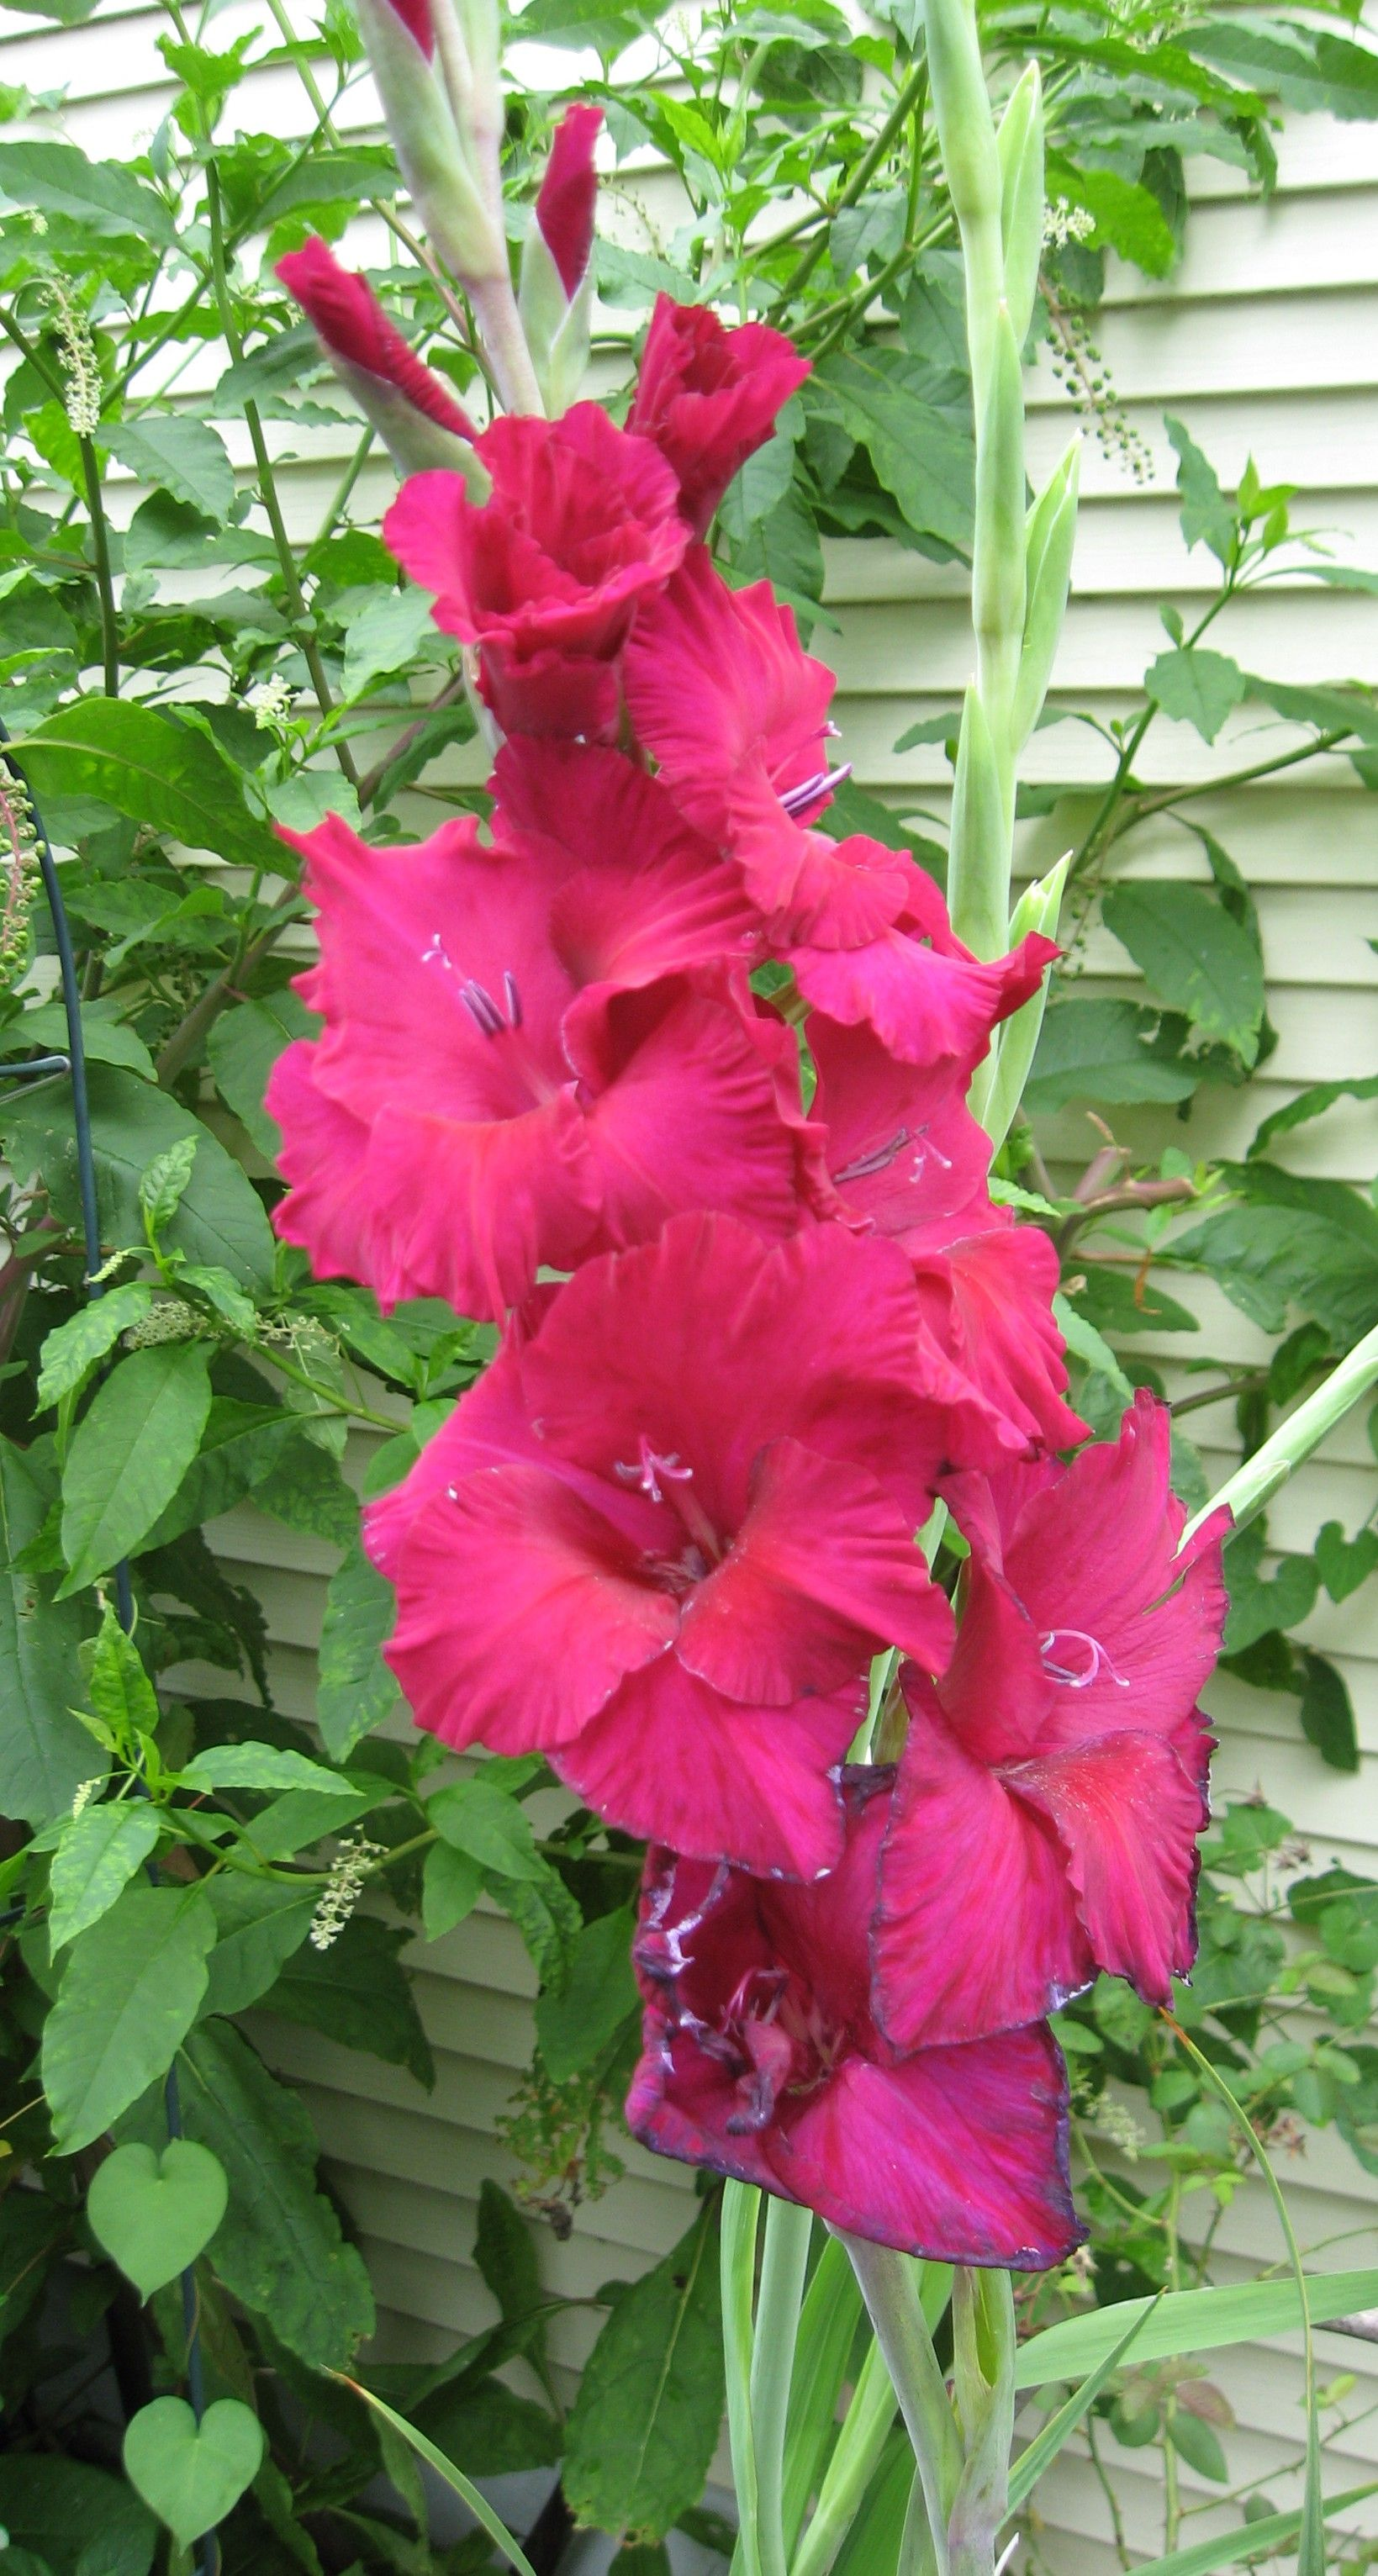 How To Plant And Care For Gladiolus General Home Garden Firehow Gladiolus Flower Gladiolus Line Flower